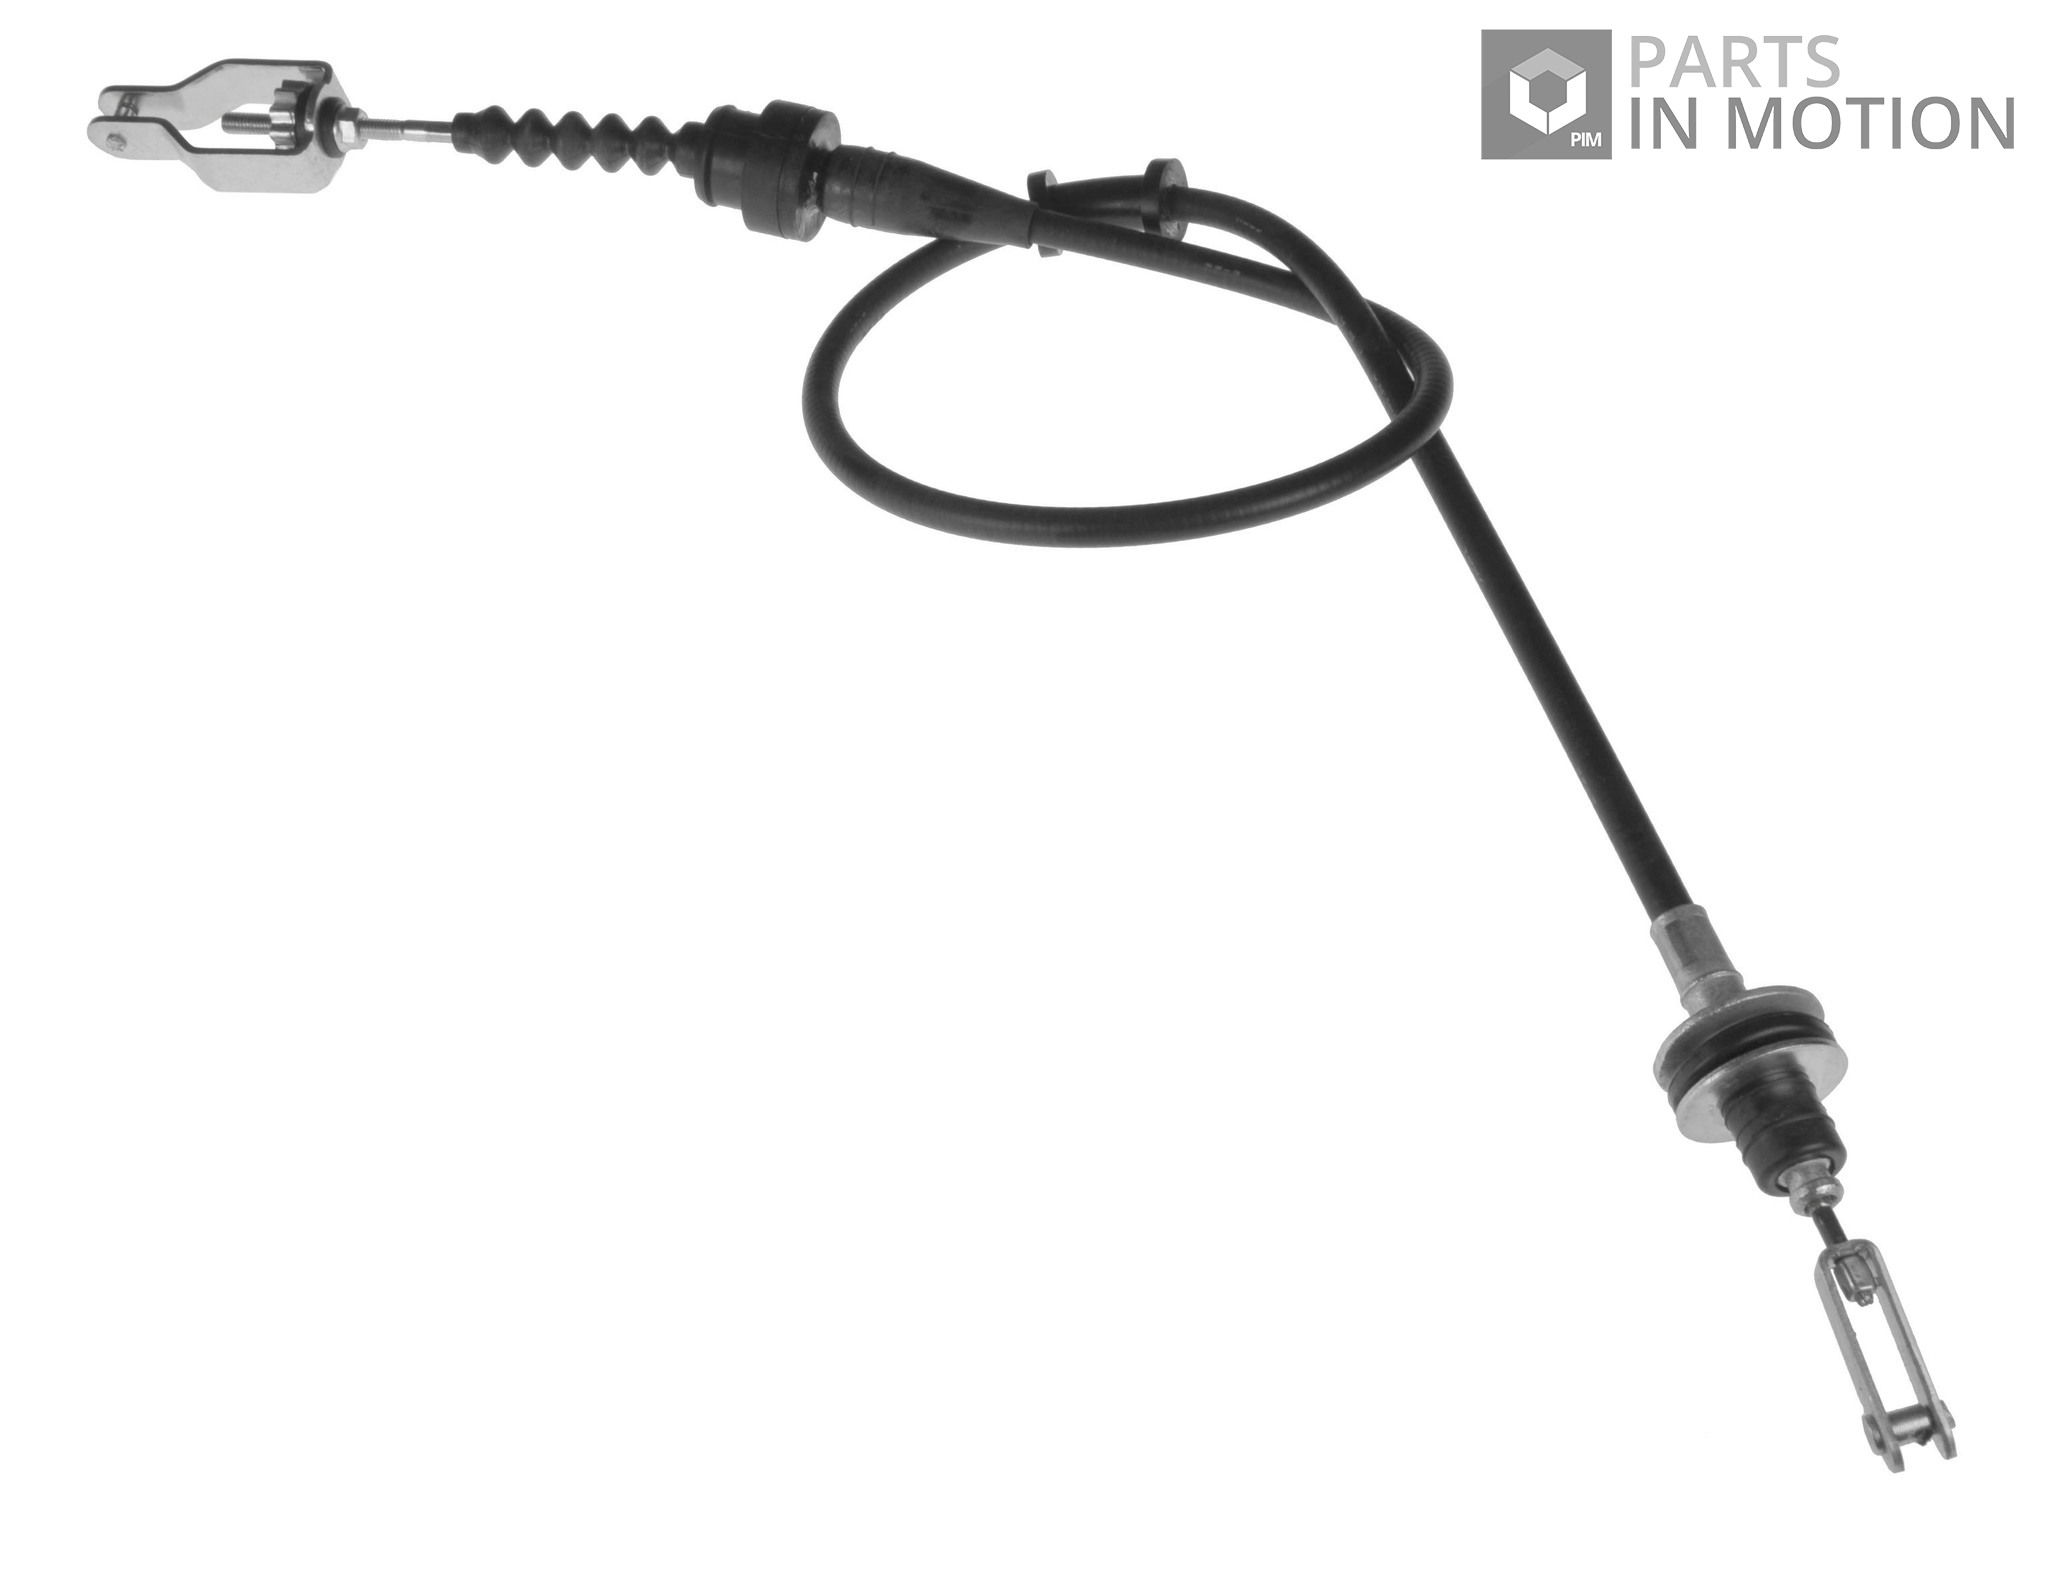 Clutch Cable fits NISSAN SUNNY Y10 1.6 91 to 00 ADL